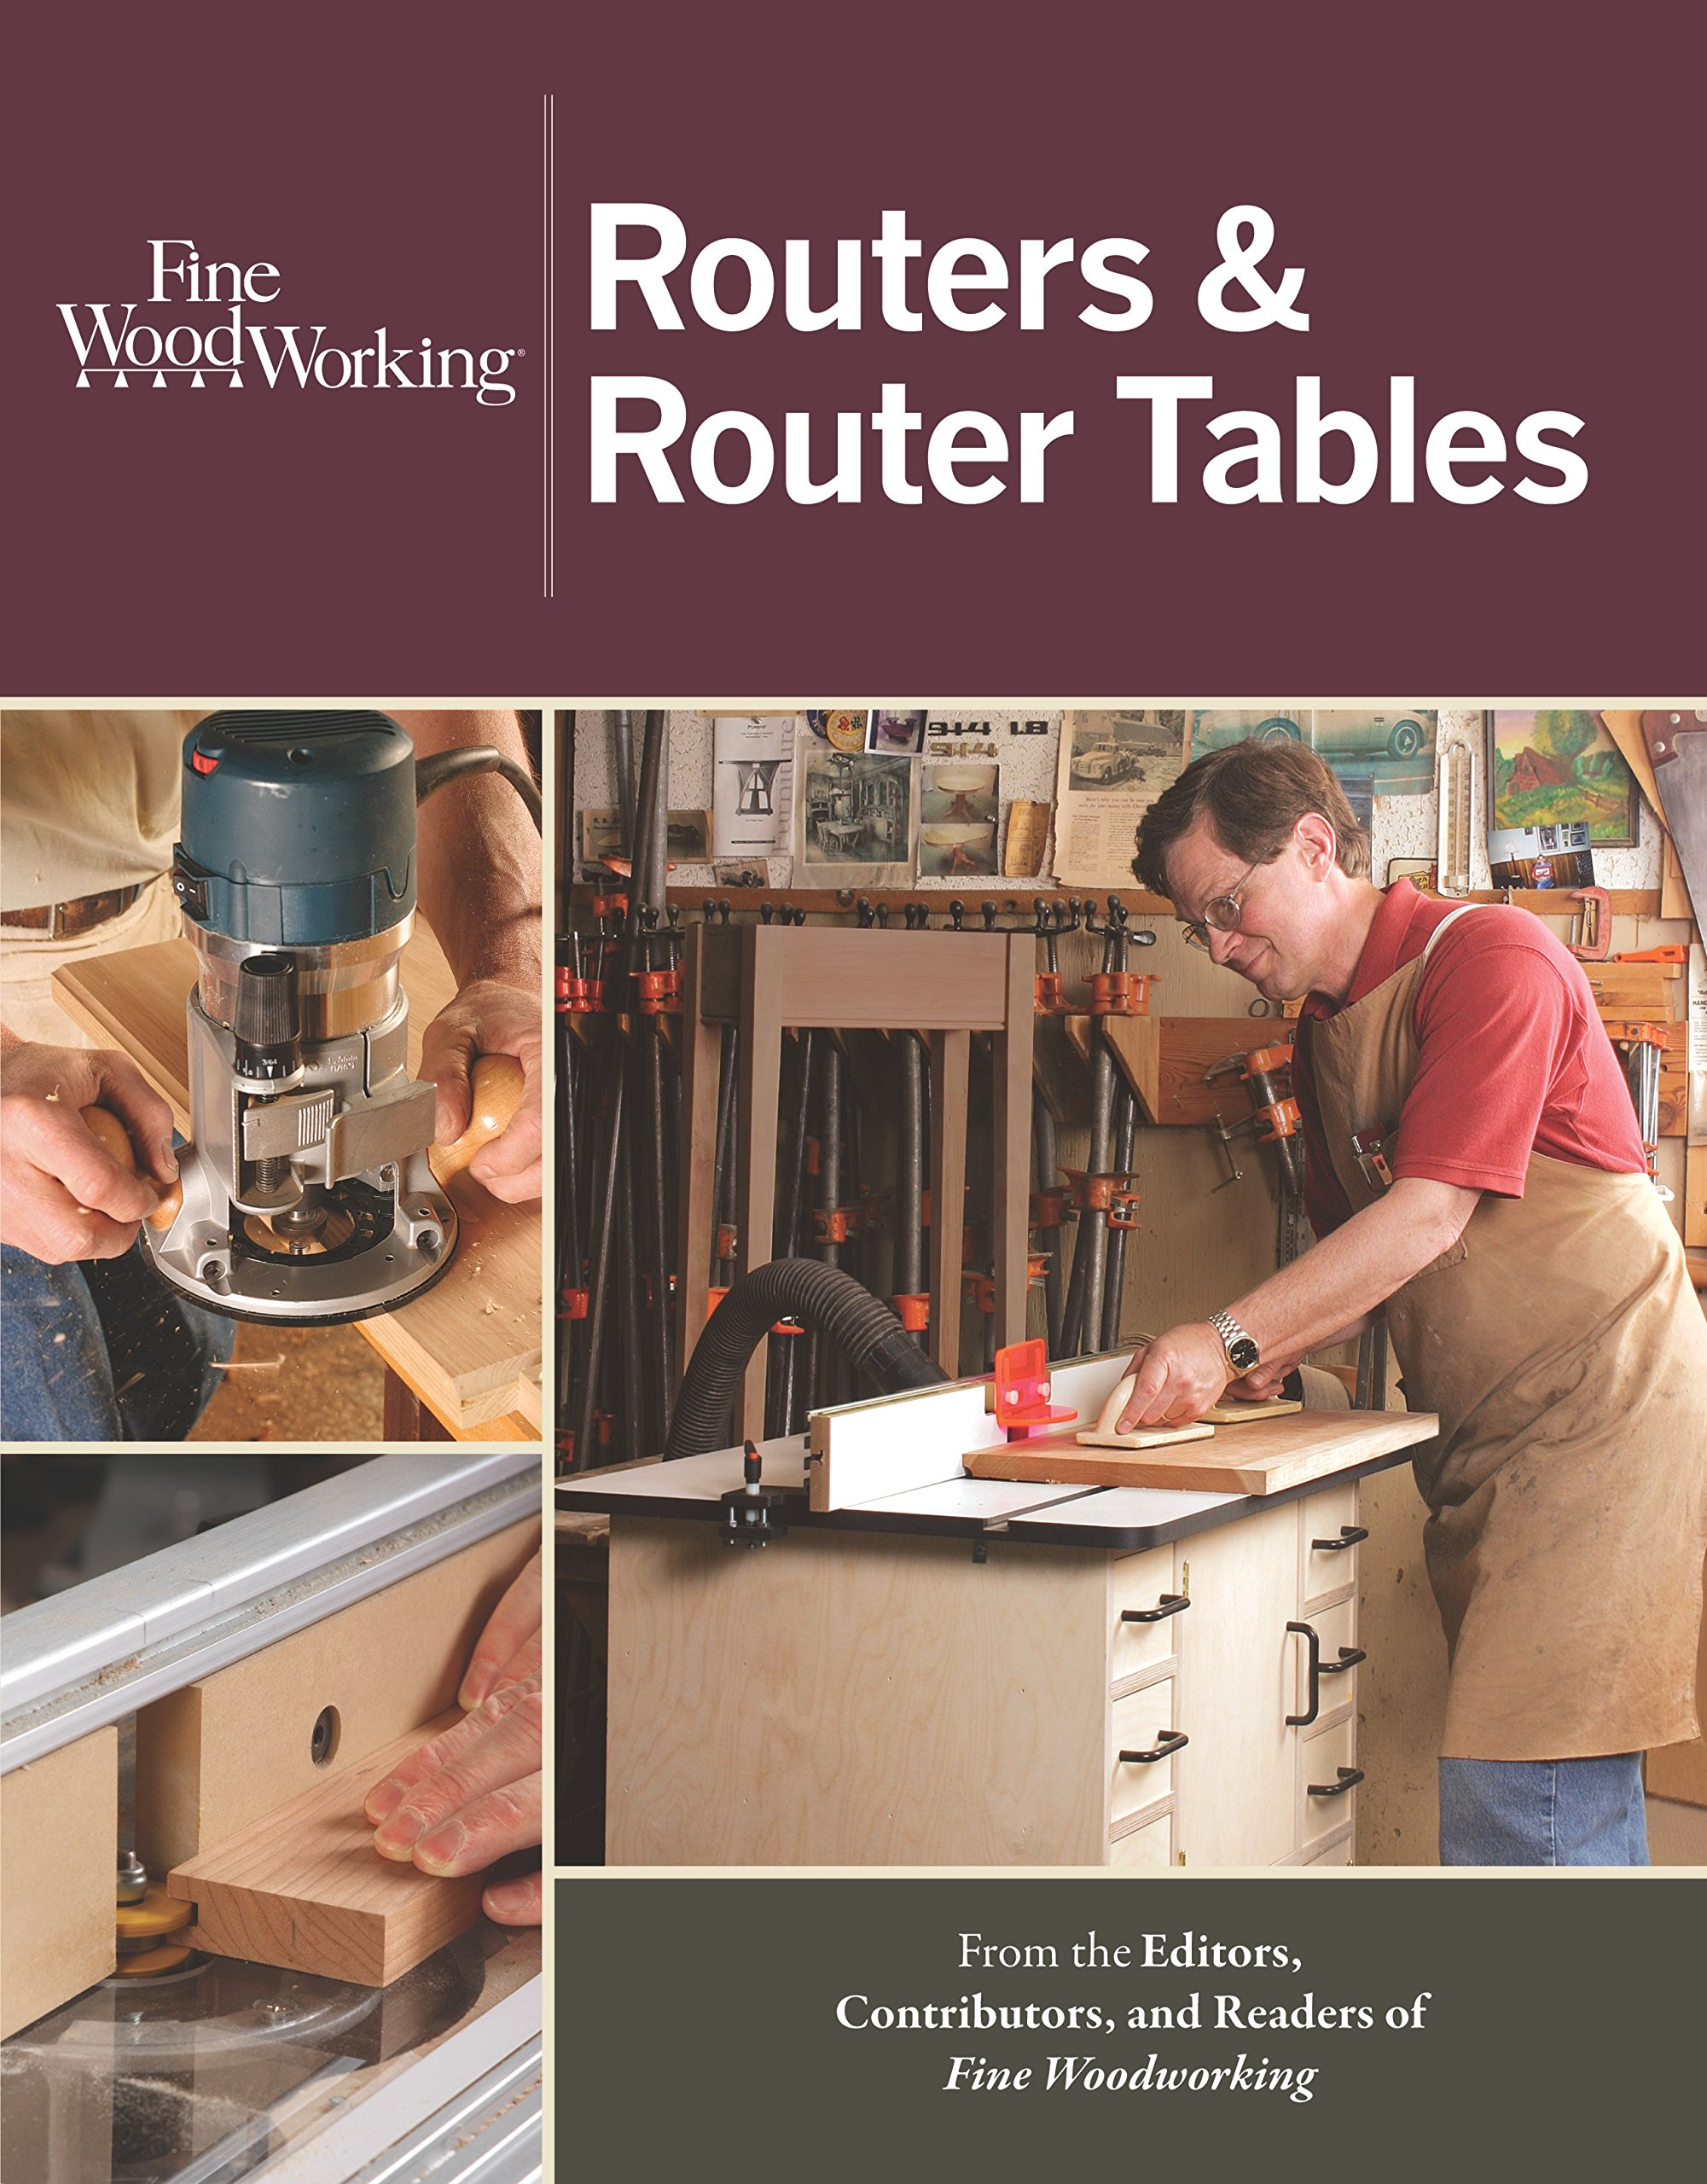 Routers router tables new best of fine woodworking editors of routers router tables new best of fine woodworking editors of fine woodworking 9781600857591 amazon books greentooth Images